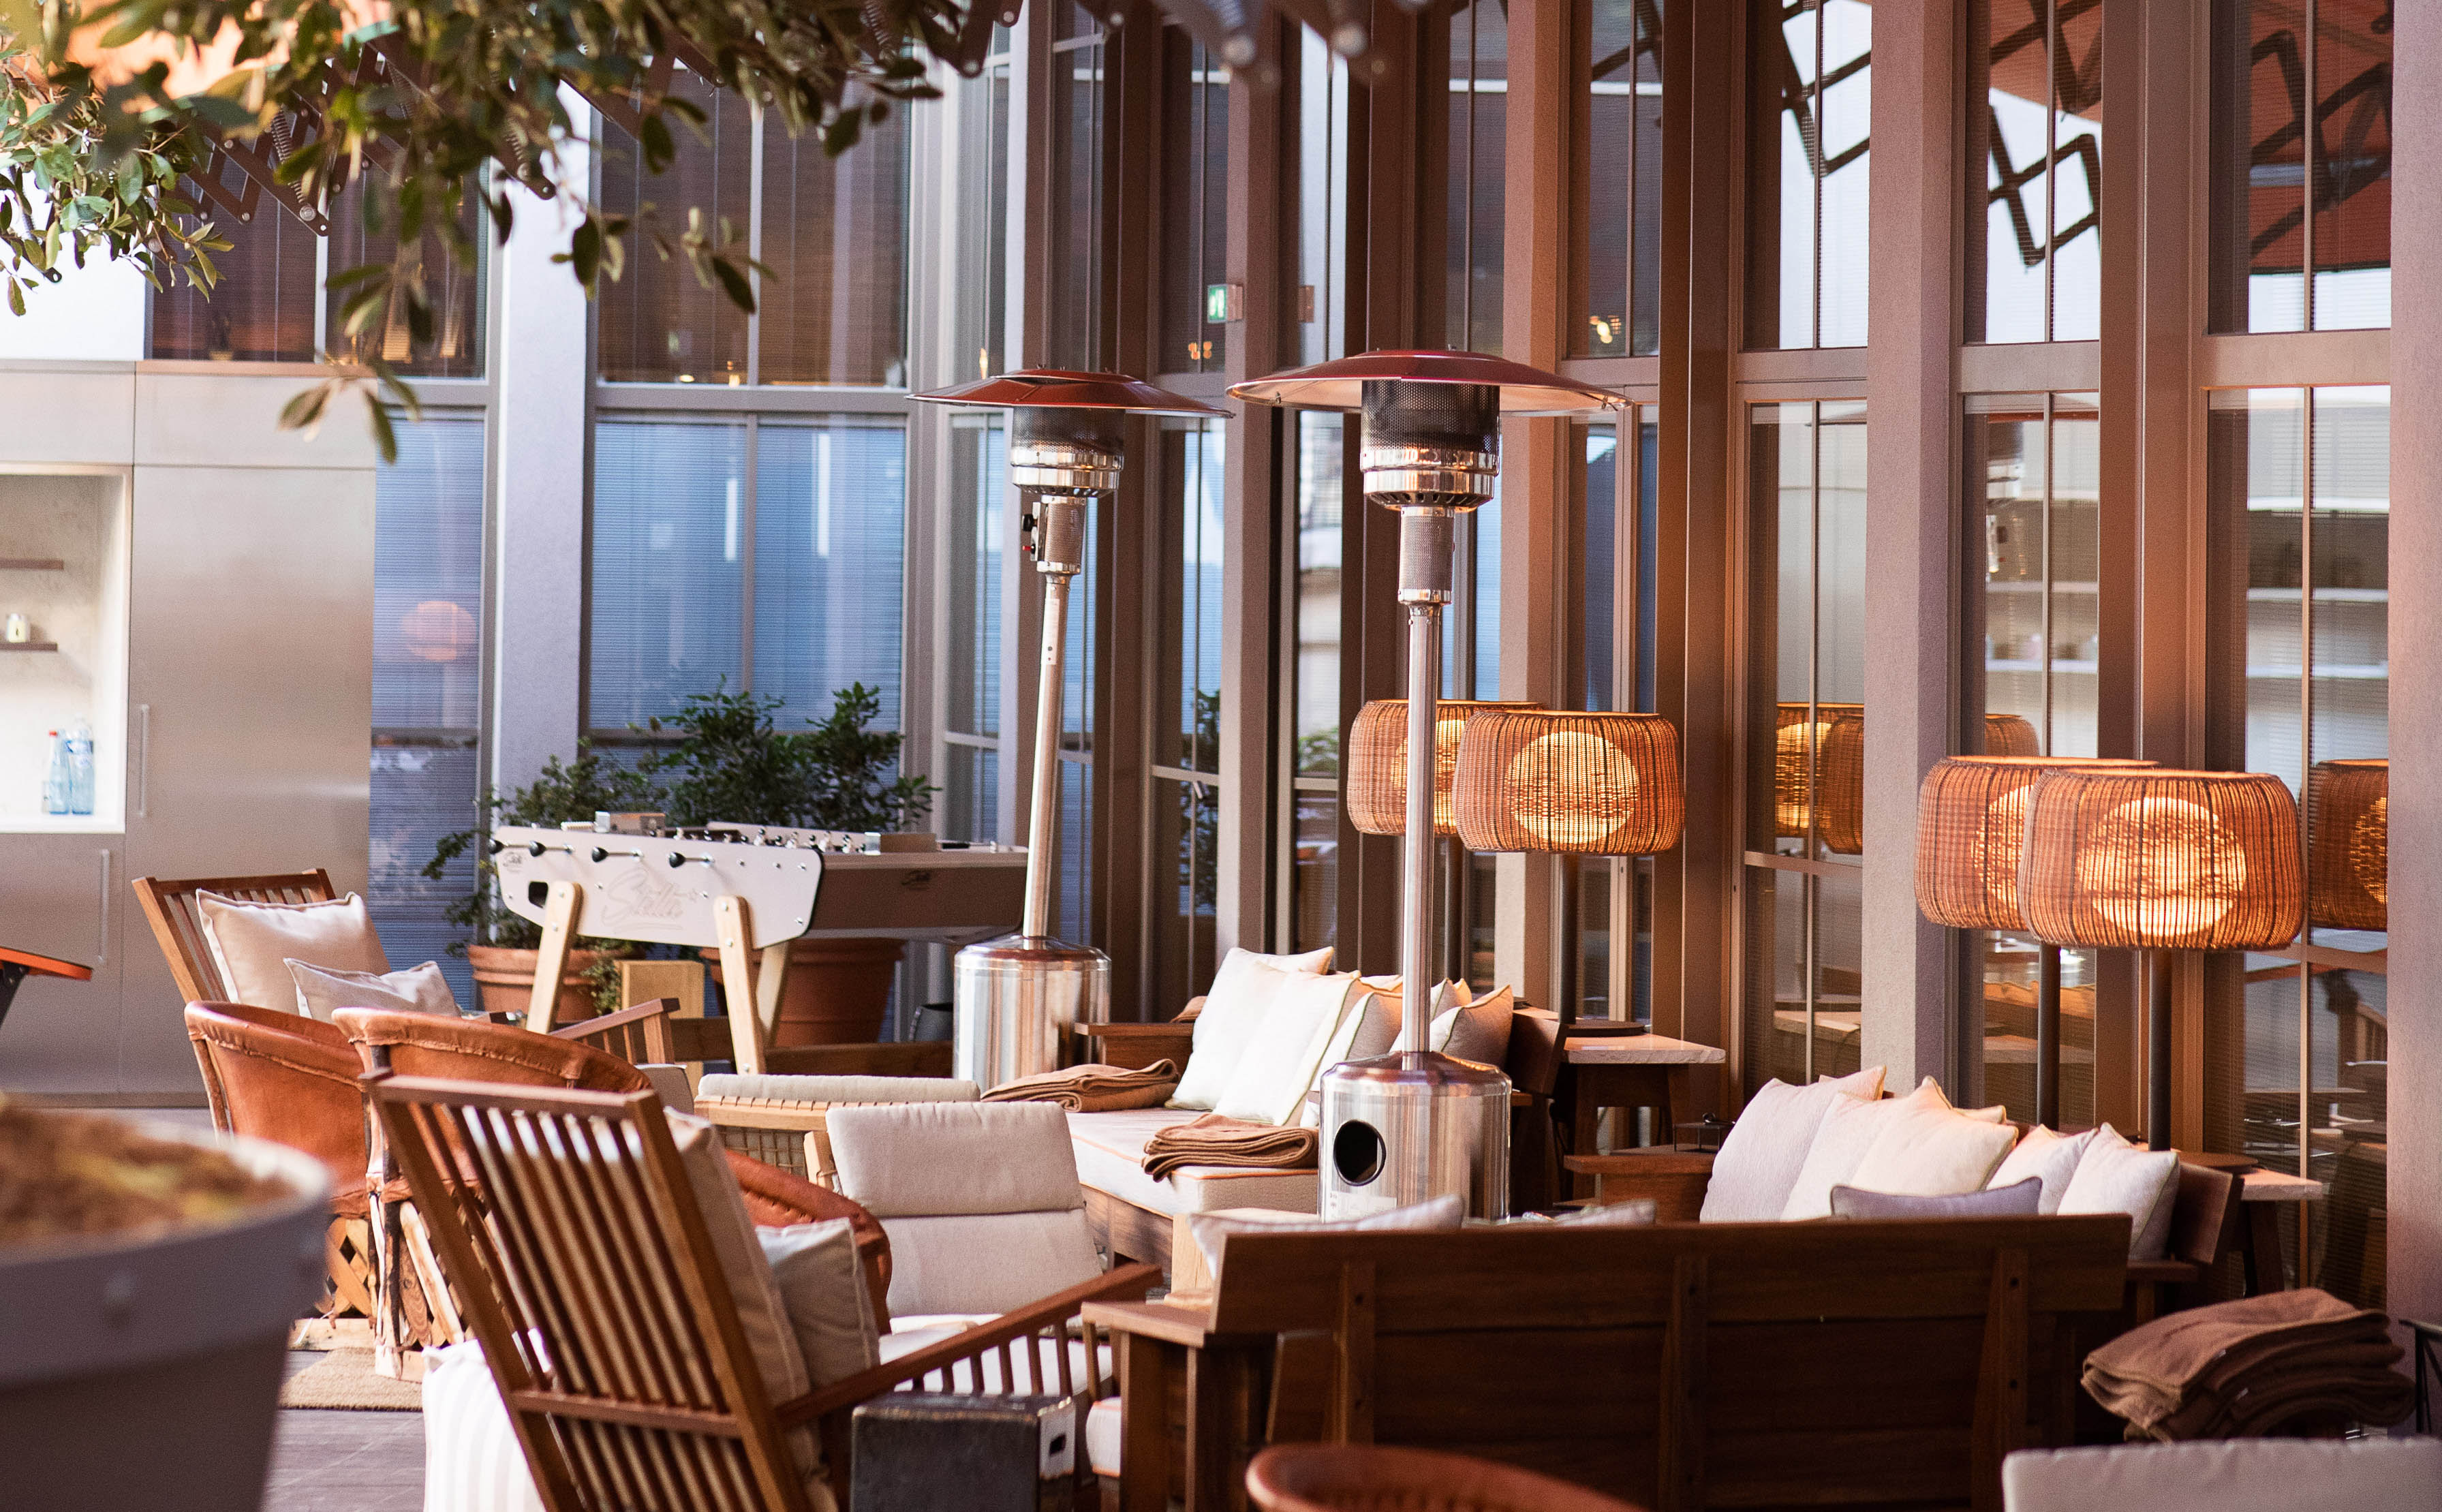 Terrasse Paris 16 Brach Luxury Design Hotel 5 Stars By Starck Paris 16 Evok Hotels